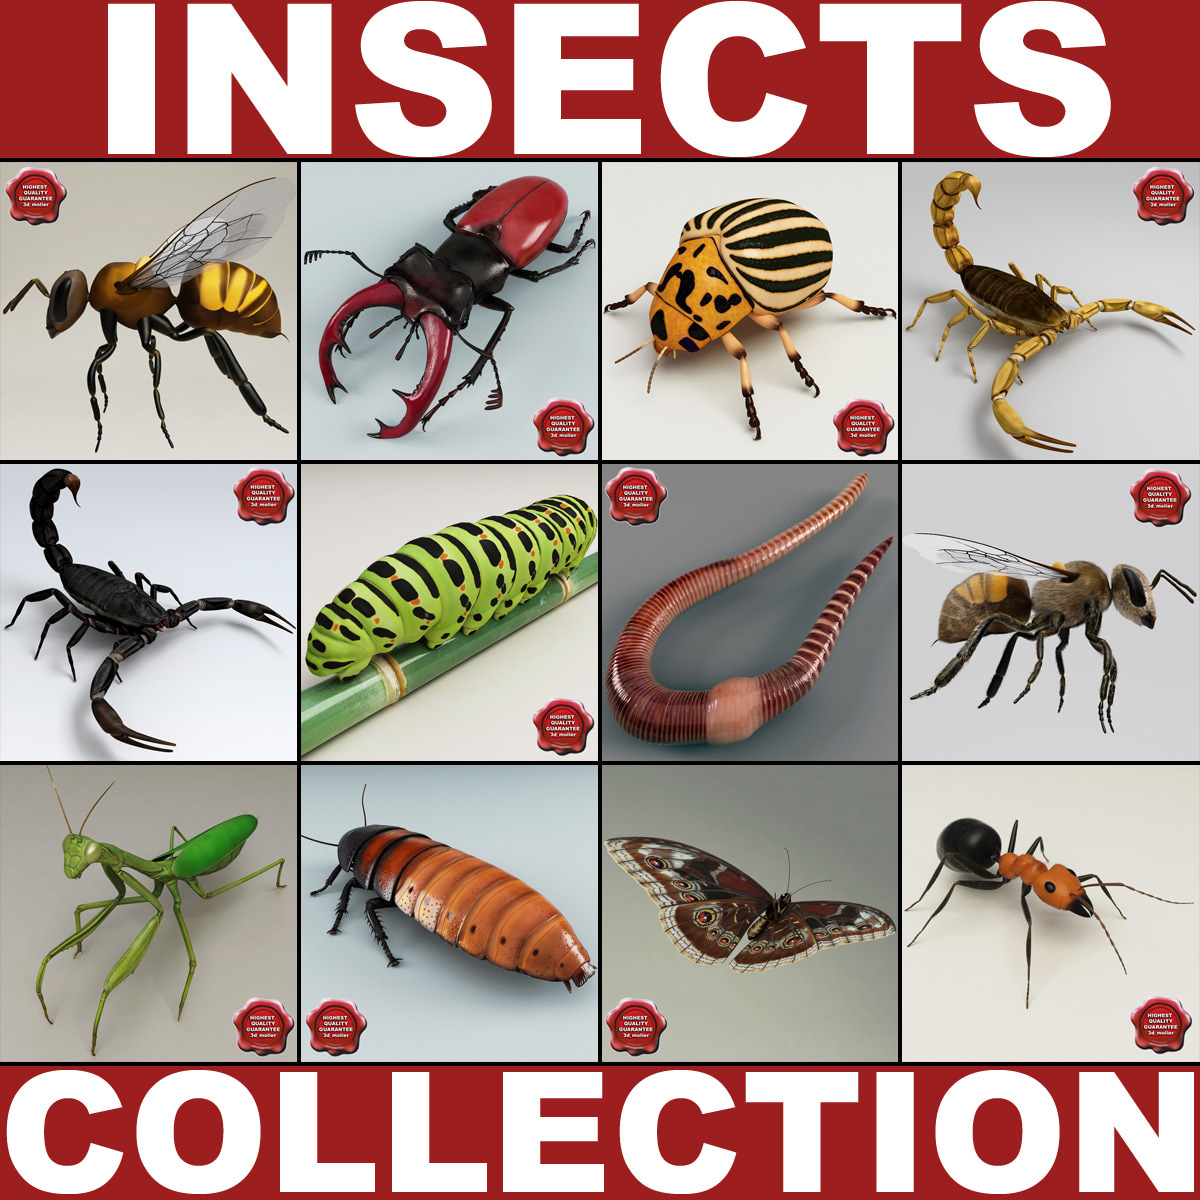 Insects_Collection_V4_000.jpg